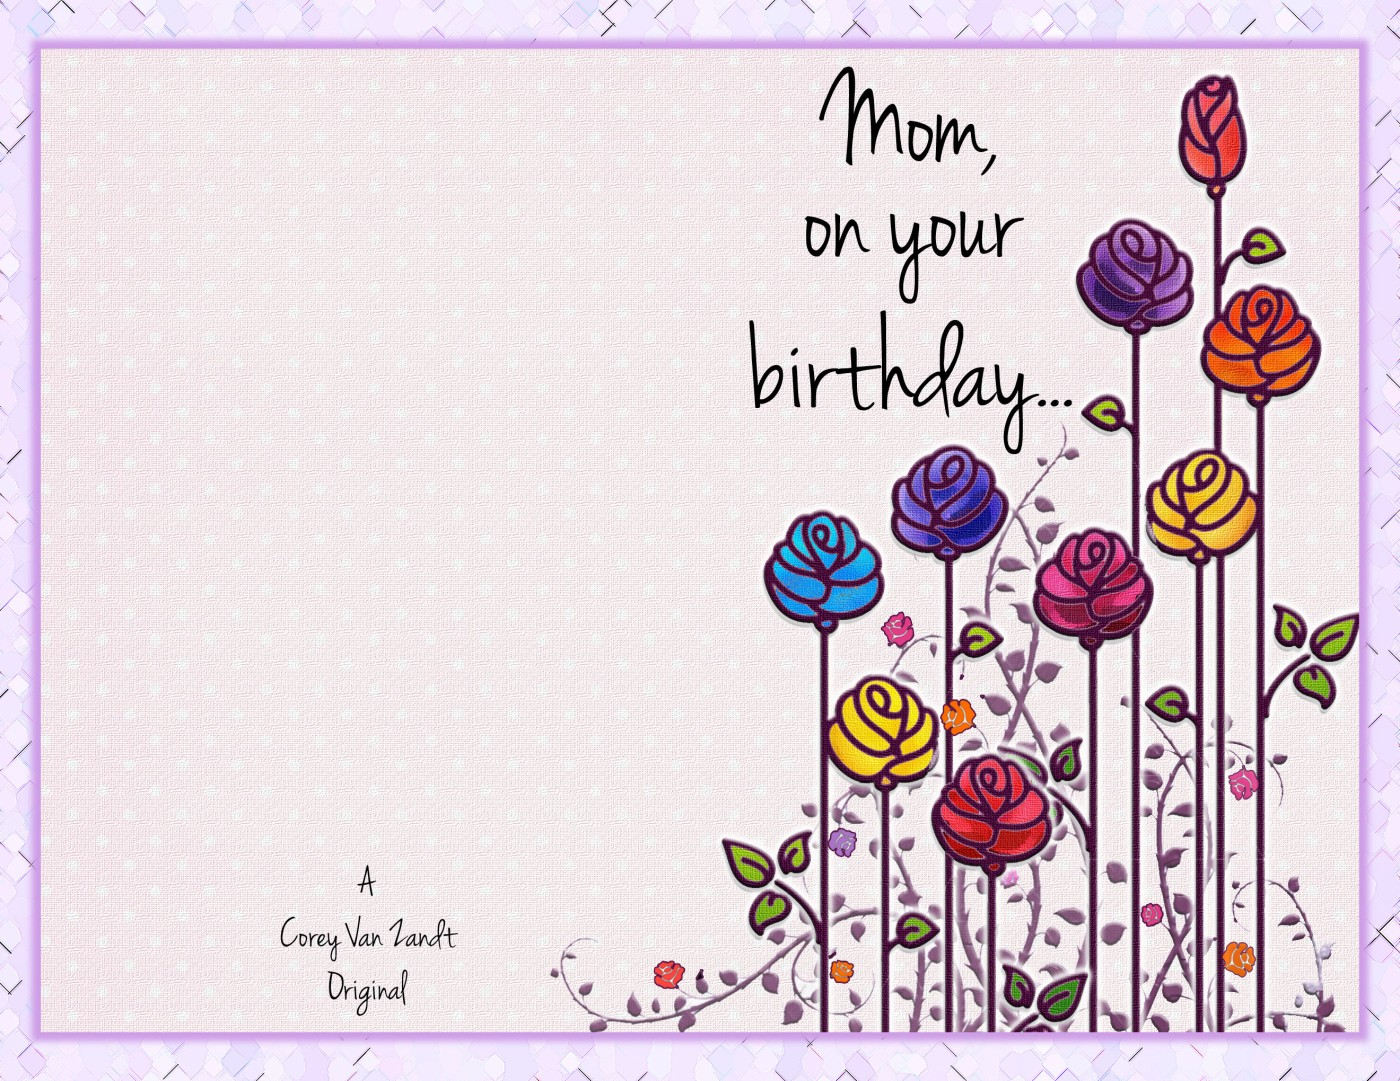 Punchy image regarding printable birthday card for mom